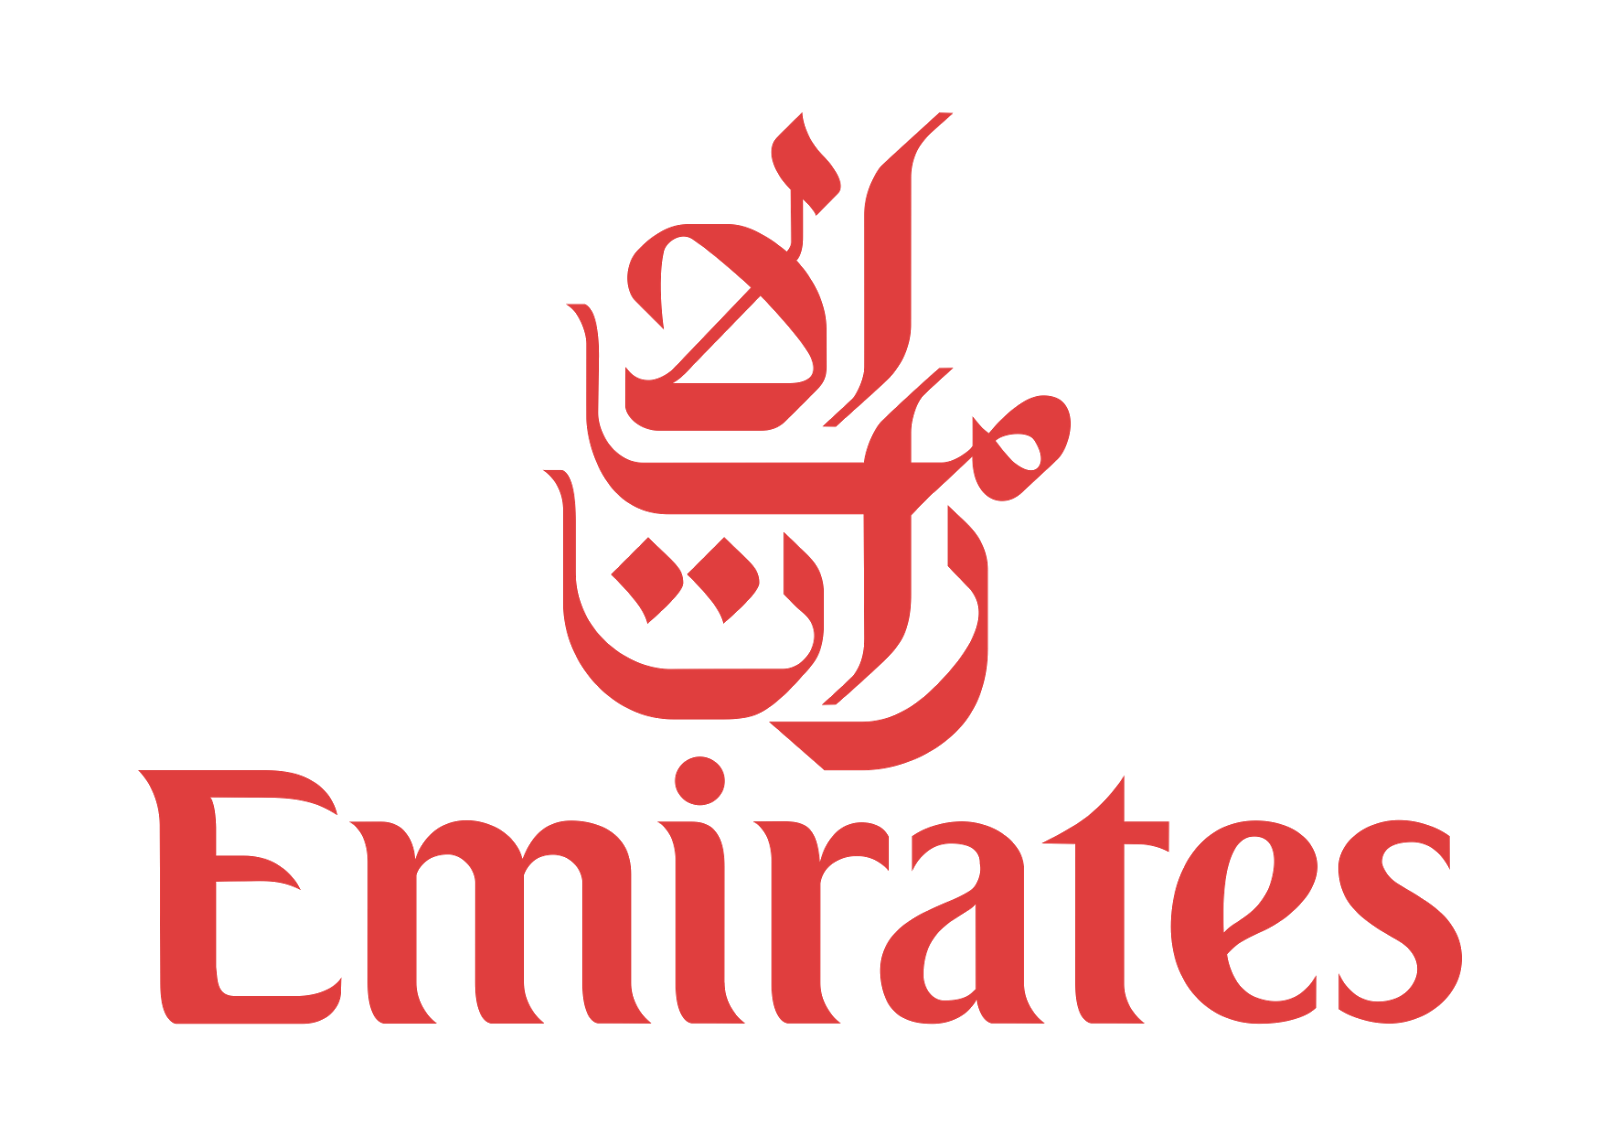 Fly emirates logo png. Transparent stickpng